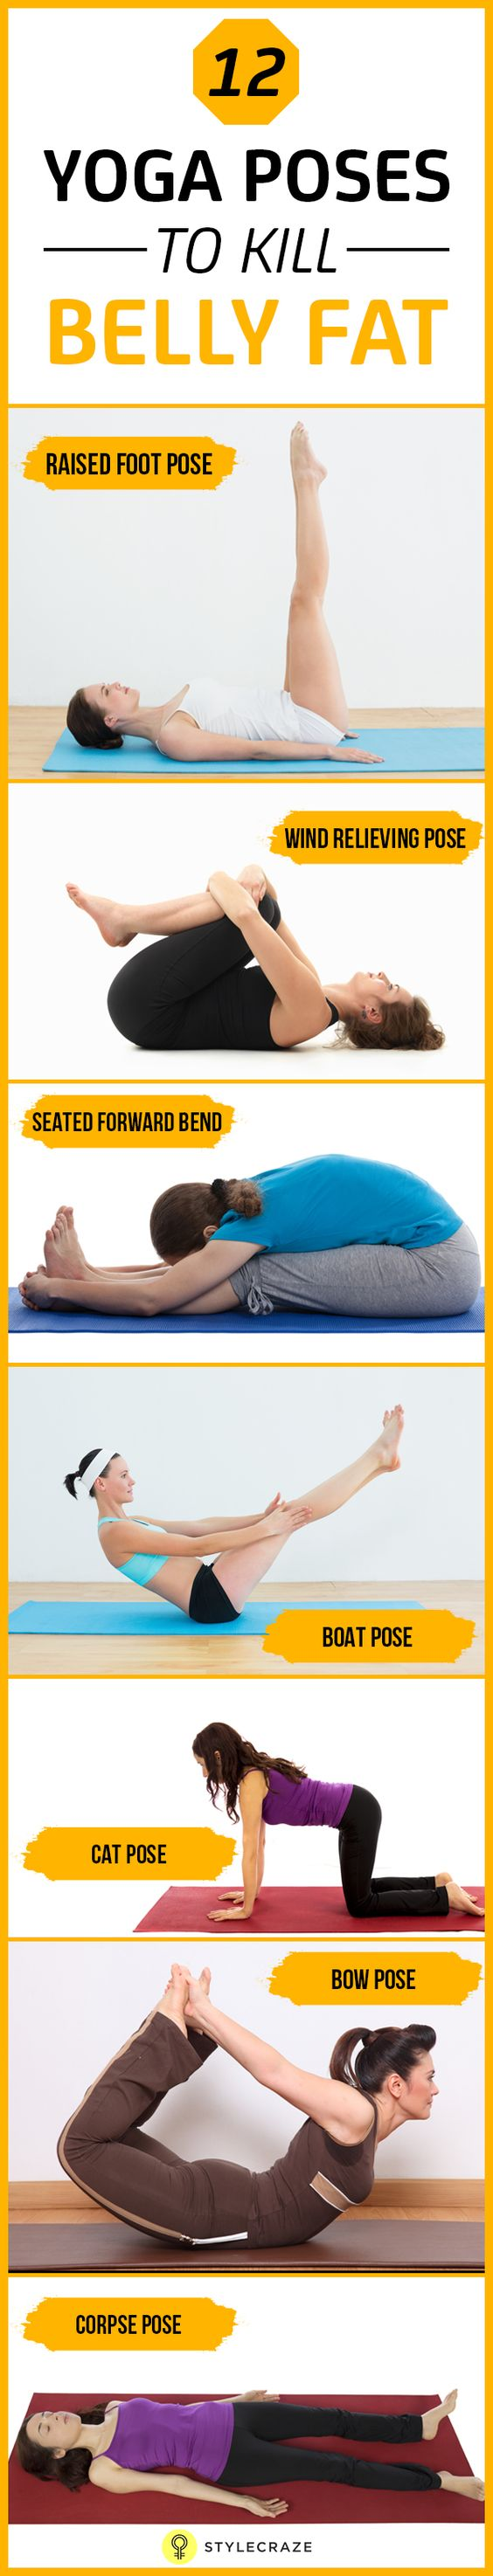 An erroneous lifestyle, unhealthy eating habits, lack of exercise, and high-stress levels – all of these give rise to a flabby tummy. This is where yoga comes into play. It not only helps decrease abdominal fat but also allows you to control your body and mind like never before! Here are 12 yoga asanas to reduce belly fat. #Yoga